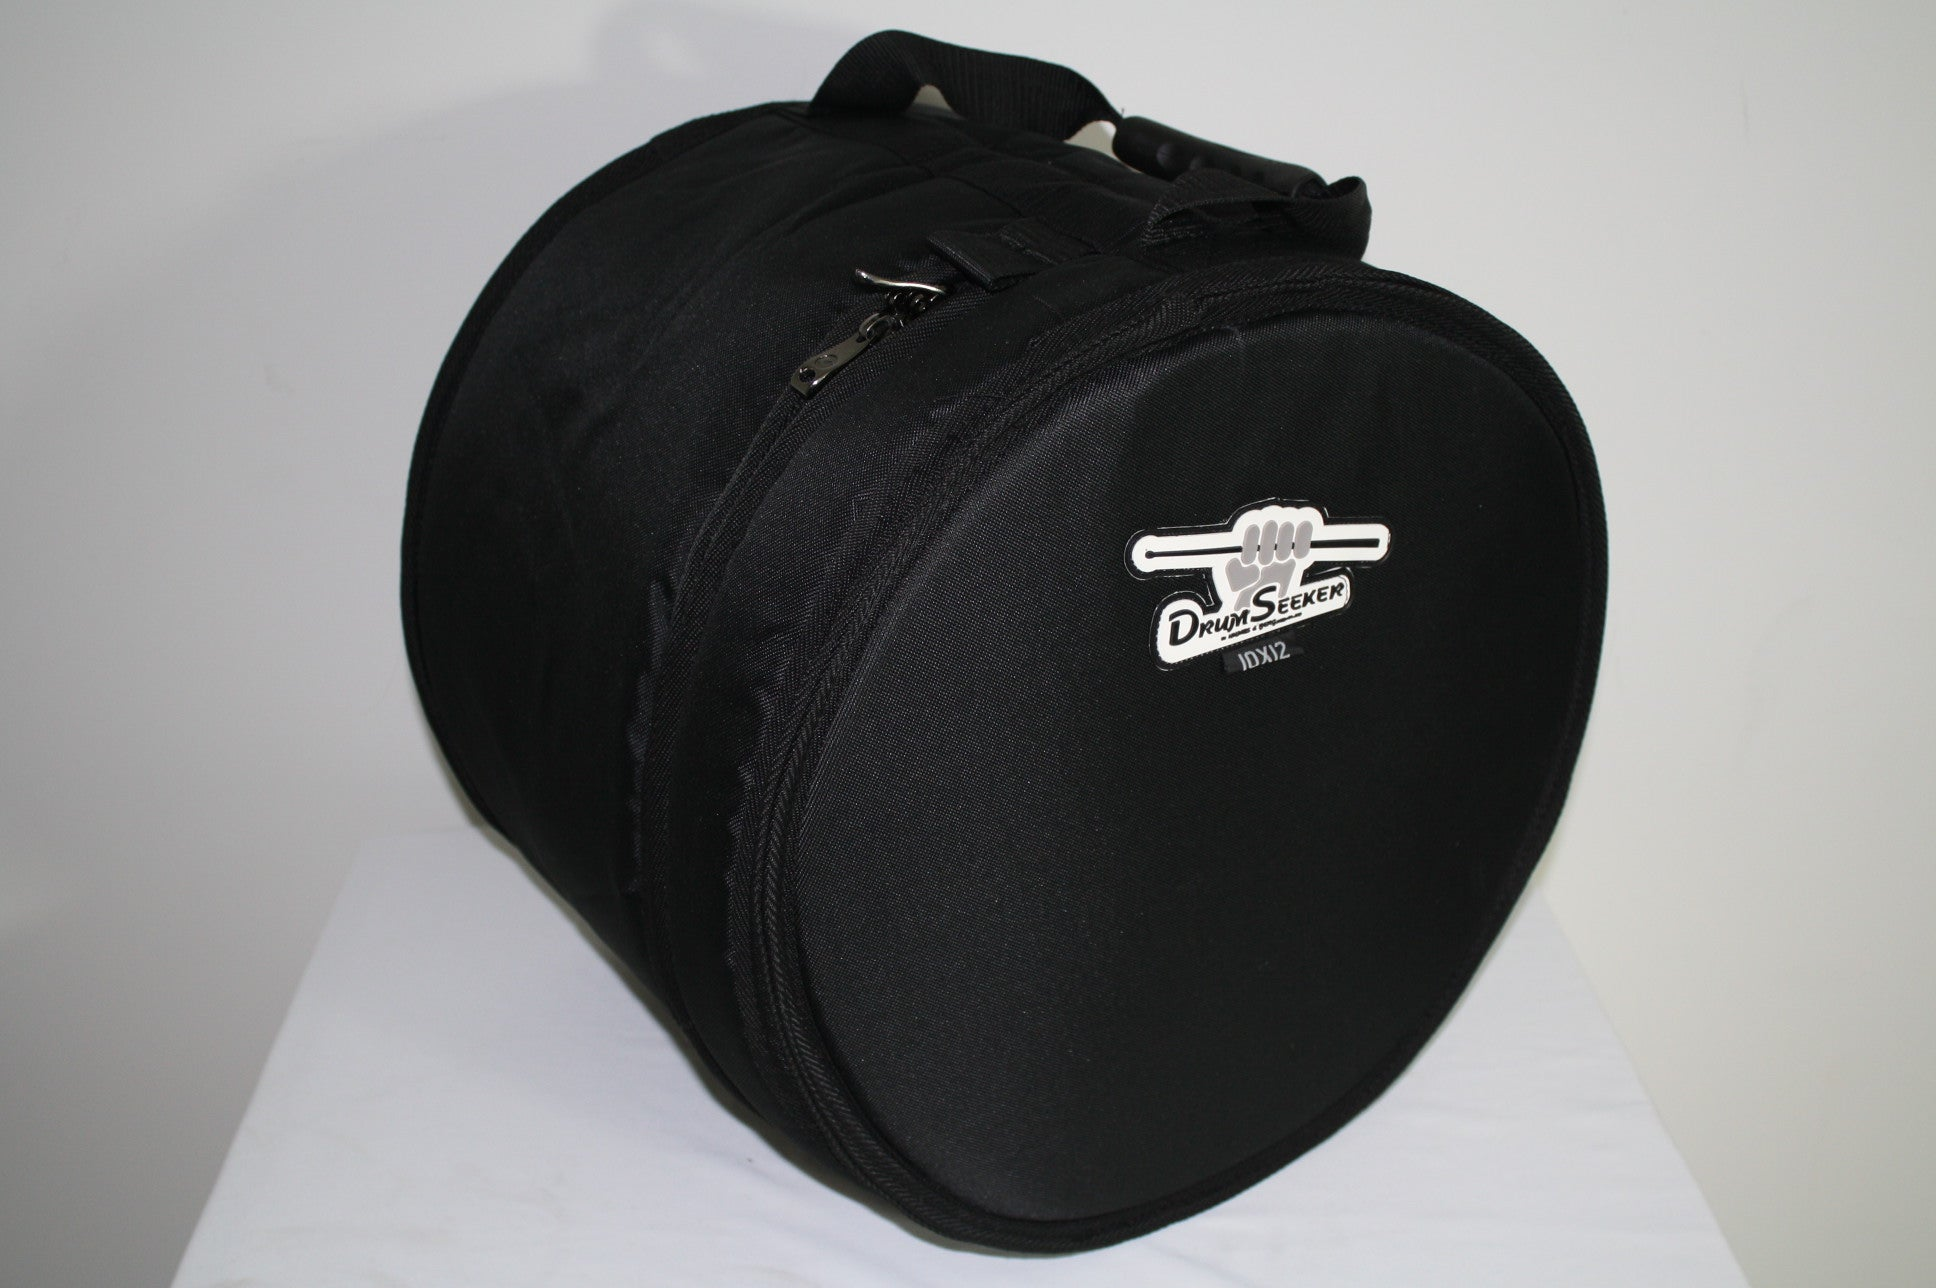 H&B  Drum Seeker 8 x 12 Inches Tom Drum Bag